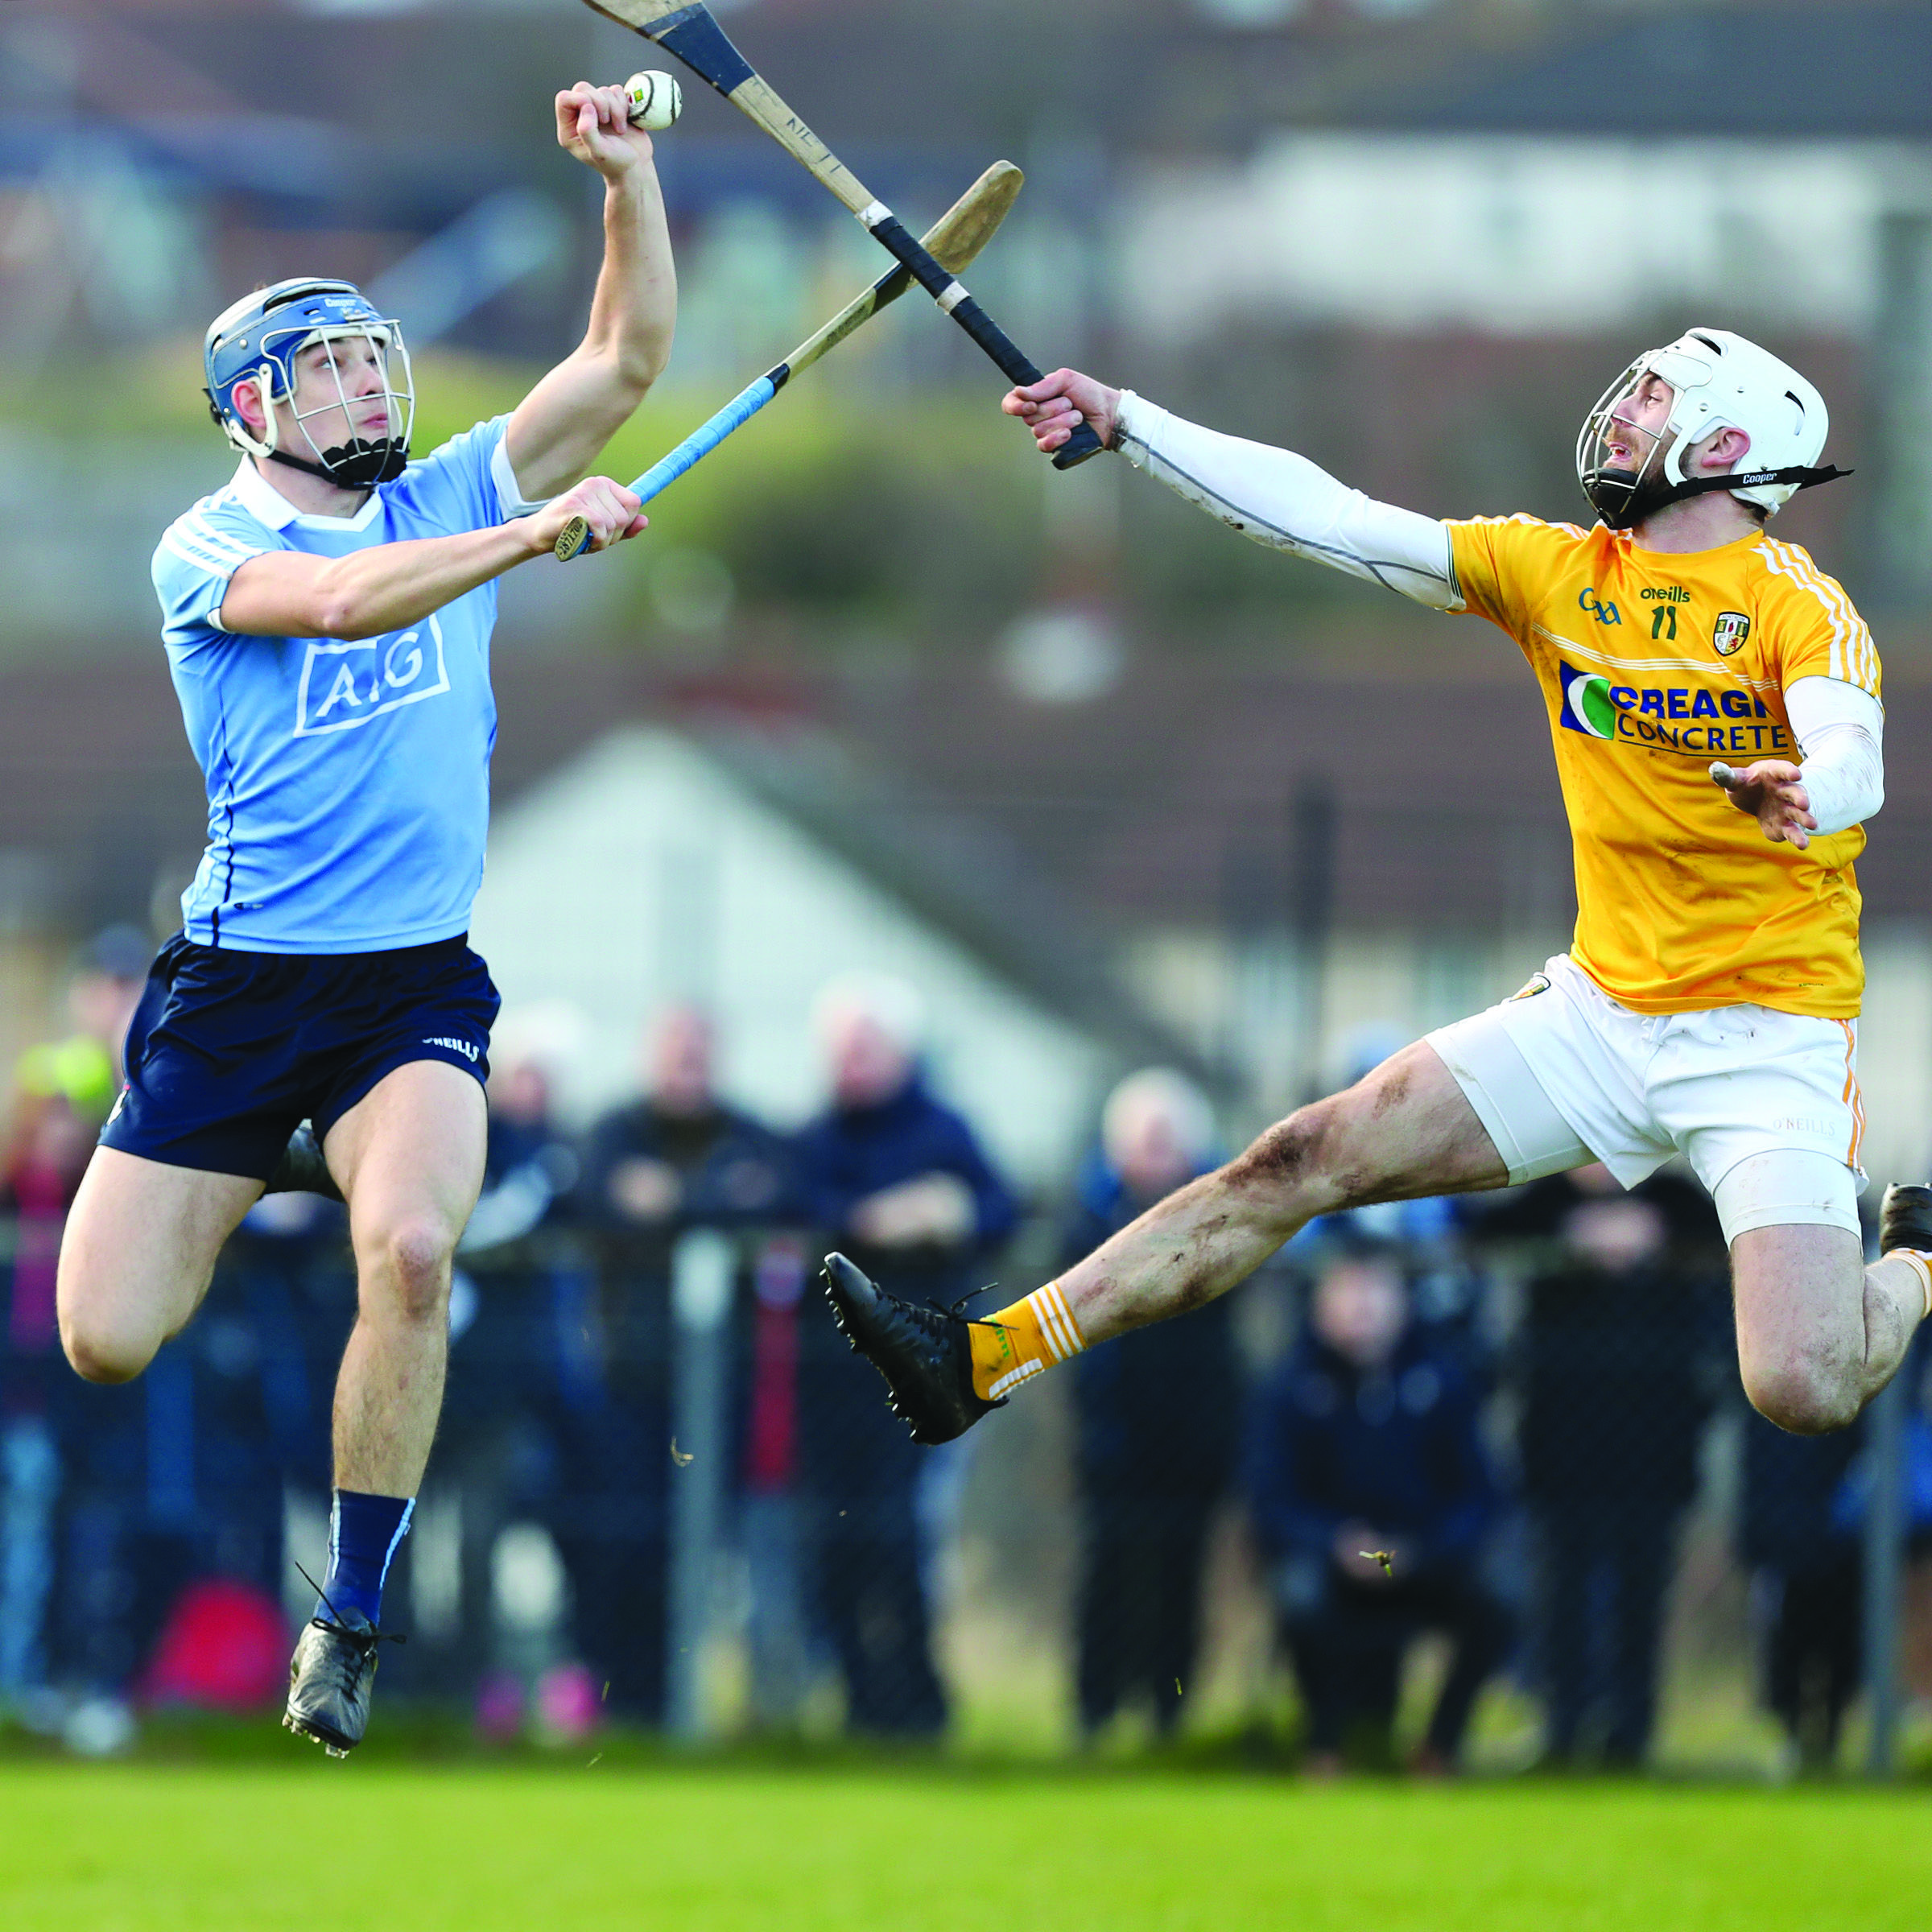 Antrim's Neill McManus and Dublin's Eoghan O'Donnell (above left) fight for possession during the last competitive meeting between the sides at Corrigan Park in 2018 and they'll clash again in the quarter-final of the Leinster SHC later in the year.